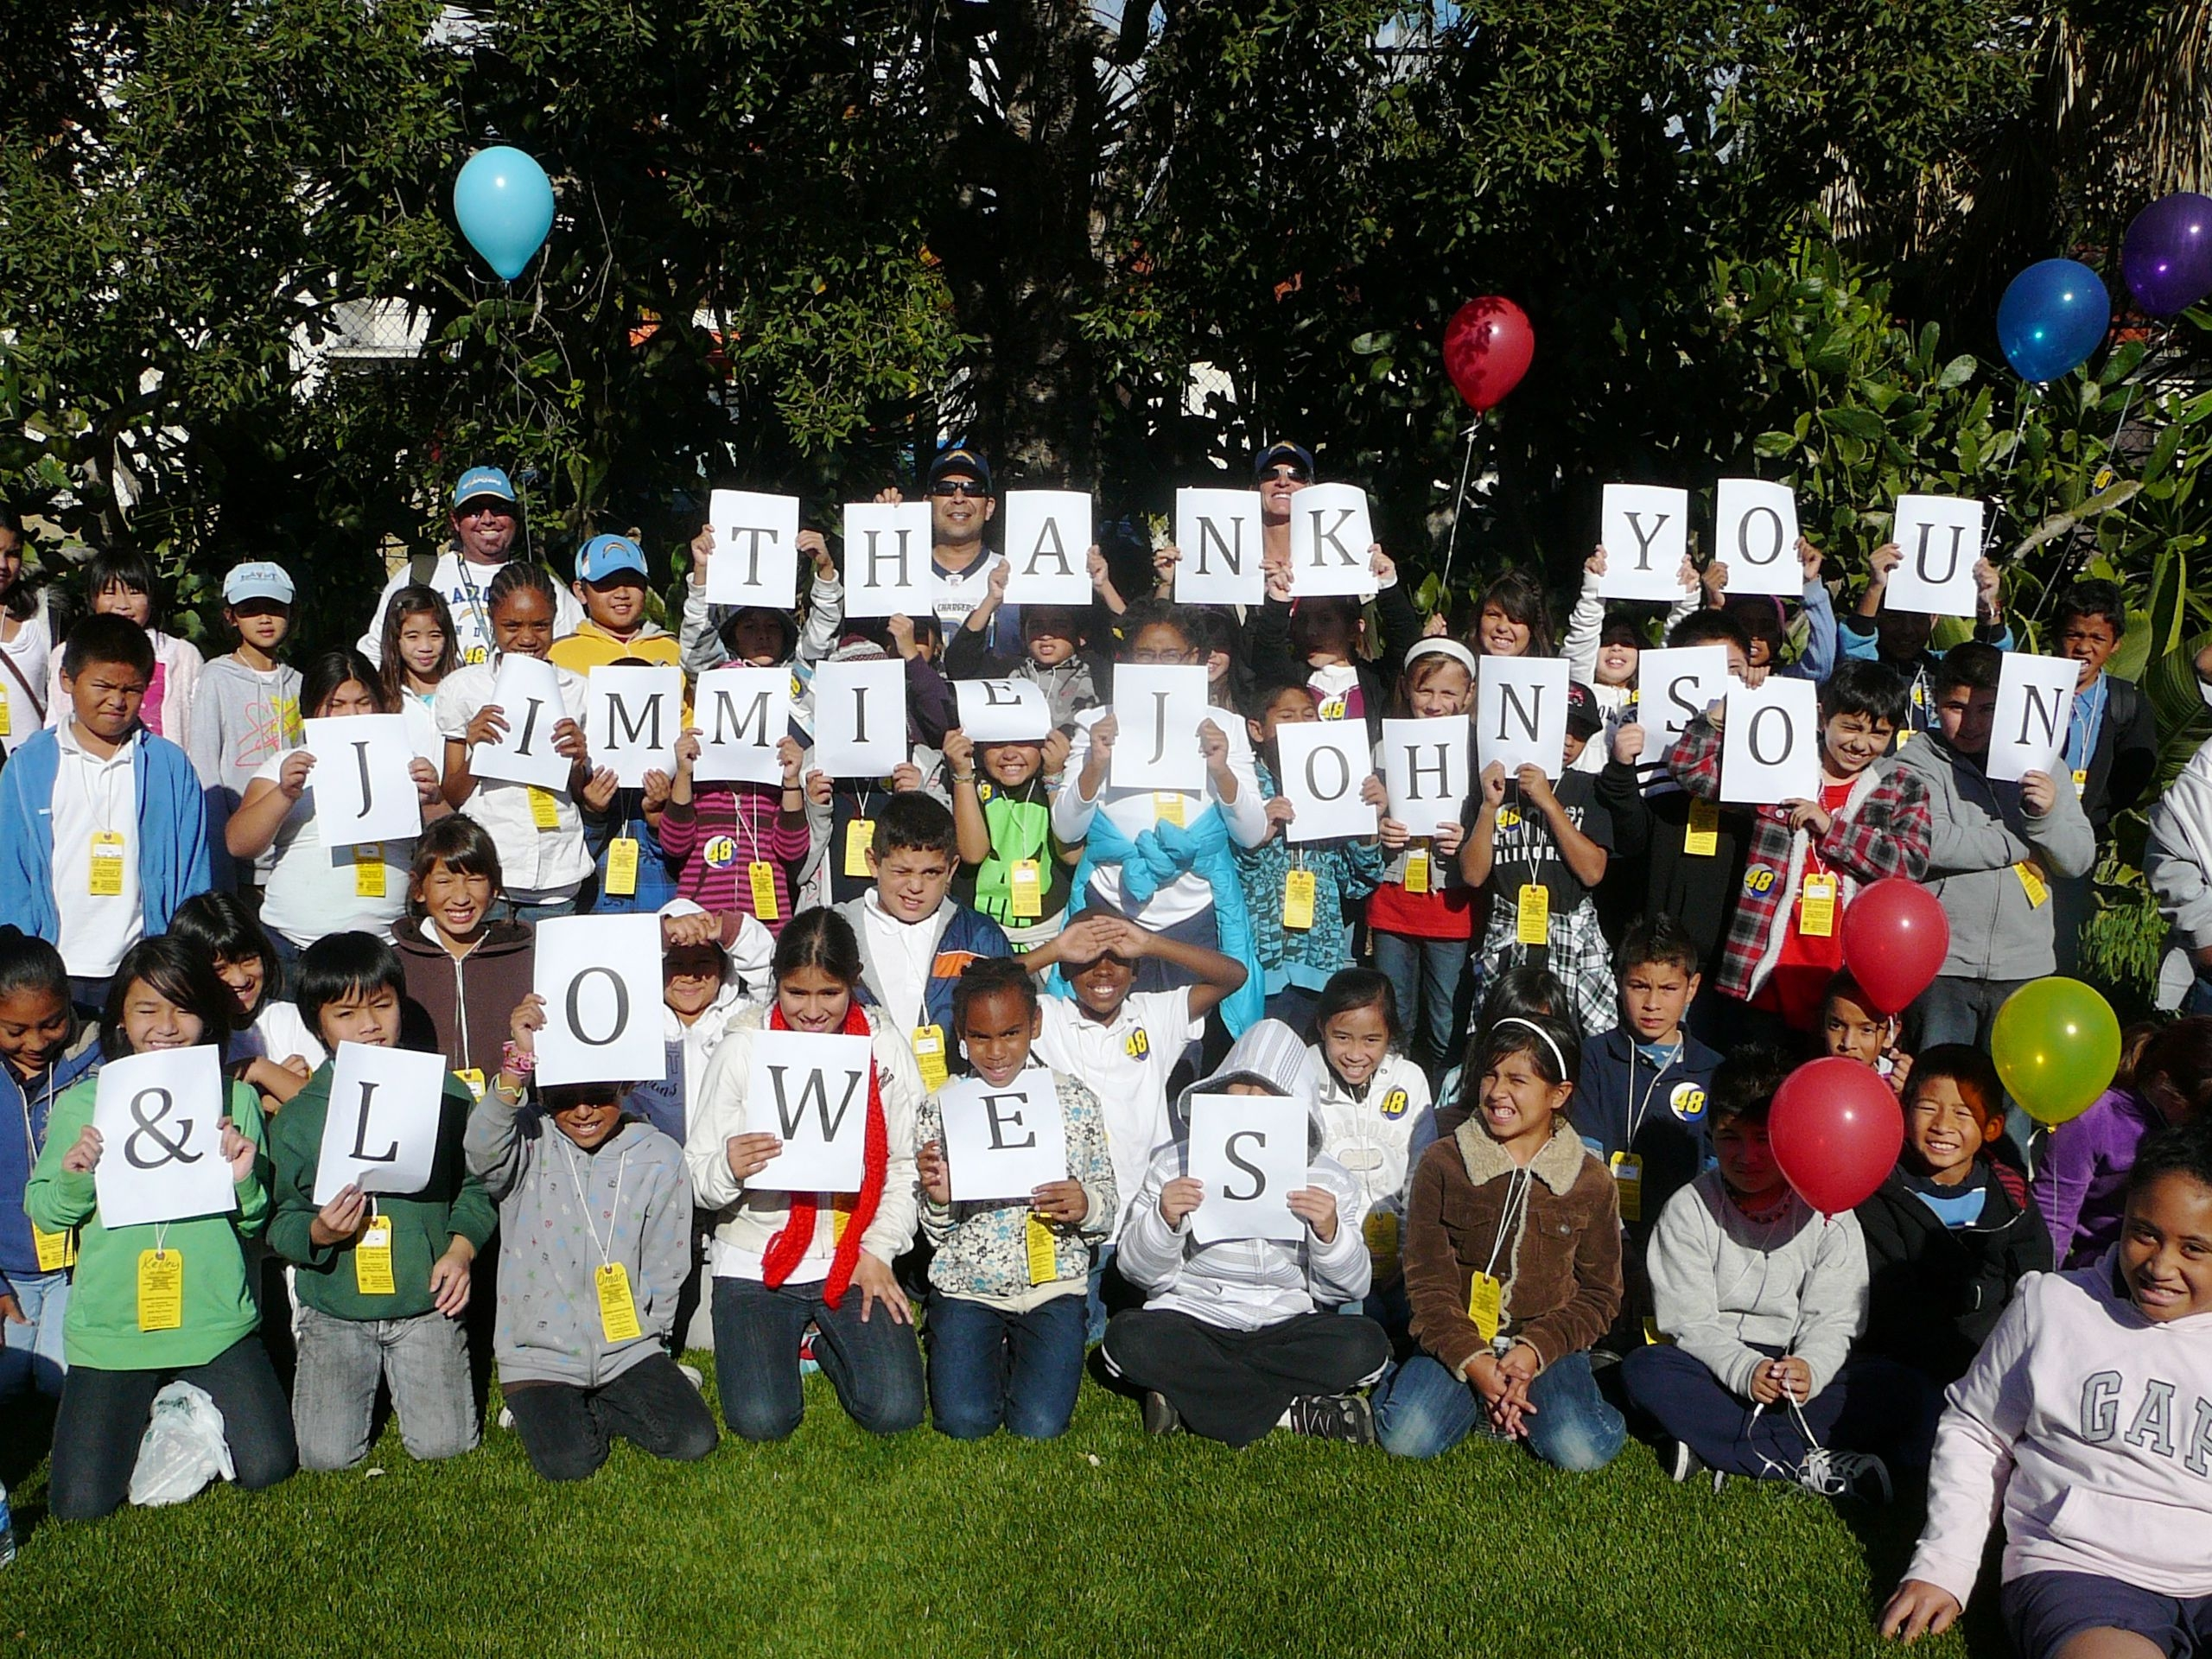 San Diego Unified School District's OCILE students thank the Jimmie Johnson Foundation (San Diego, 2010)